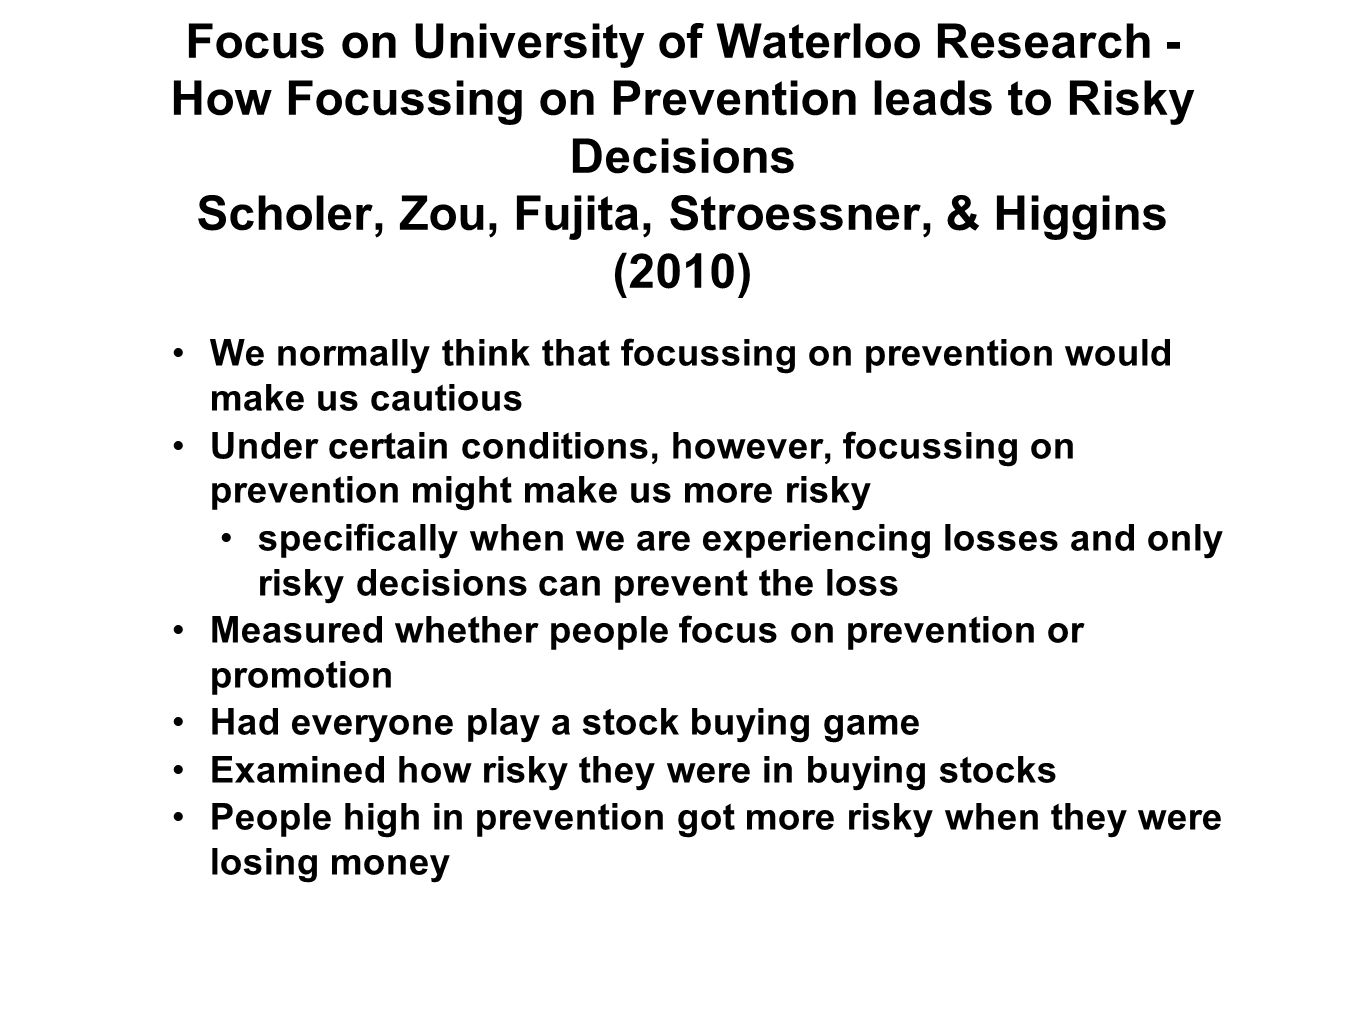 Focus on University of Waterloo Research - How Focussing on Prevention leads to Risky Decisions Scholer, Zou, Fujita, Stroessner, & Higgins (2010)